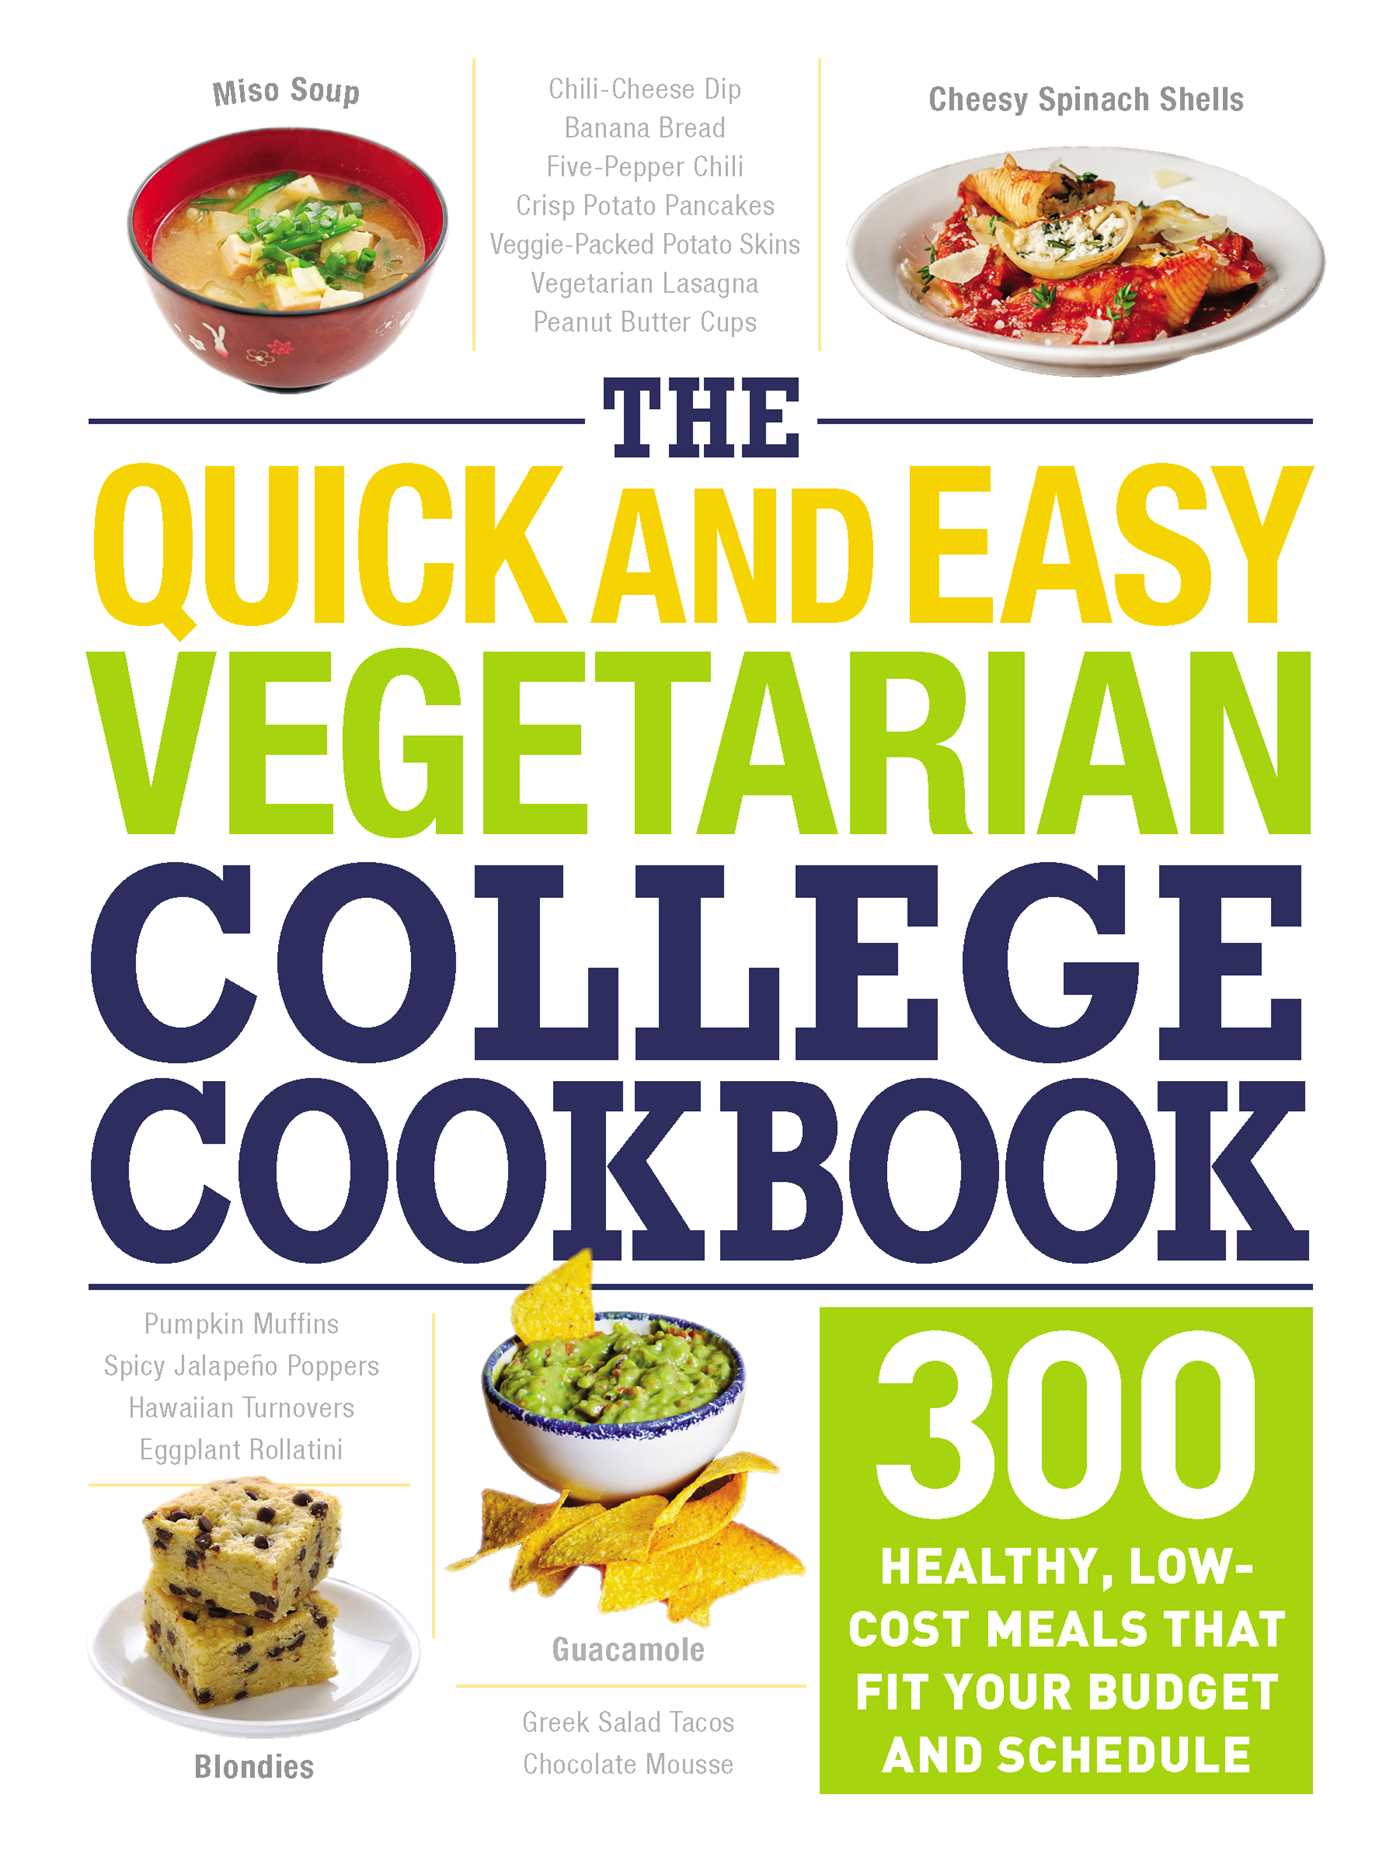 The quick and easy vegetarian college cookbook book by adams media the quick and easy vegetarian college cookbook 9781507204191 hr forumfinder Choice Image